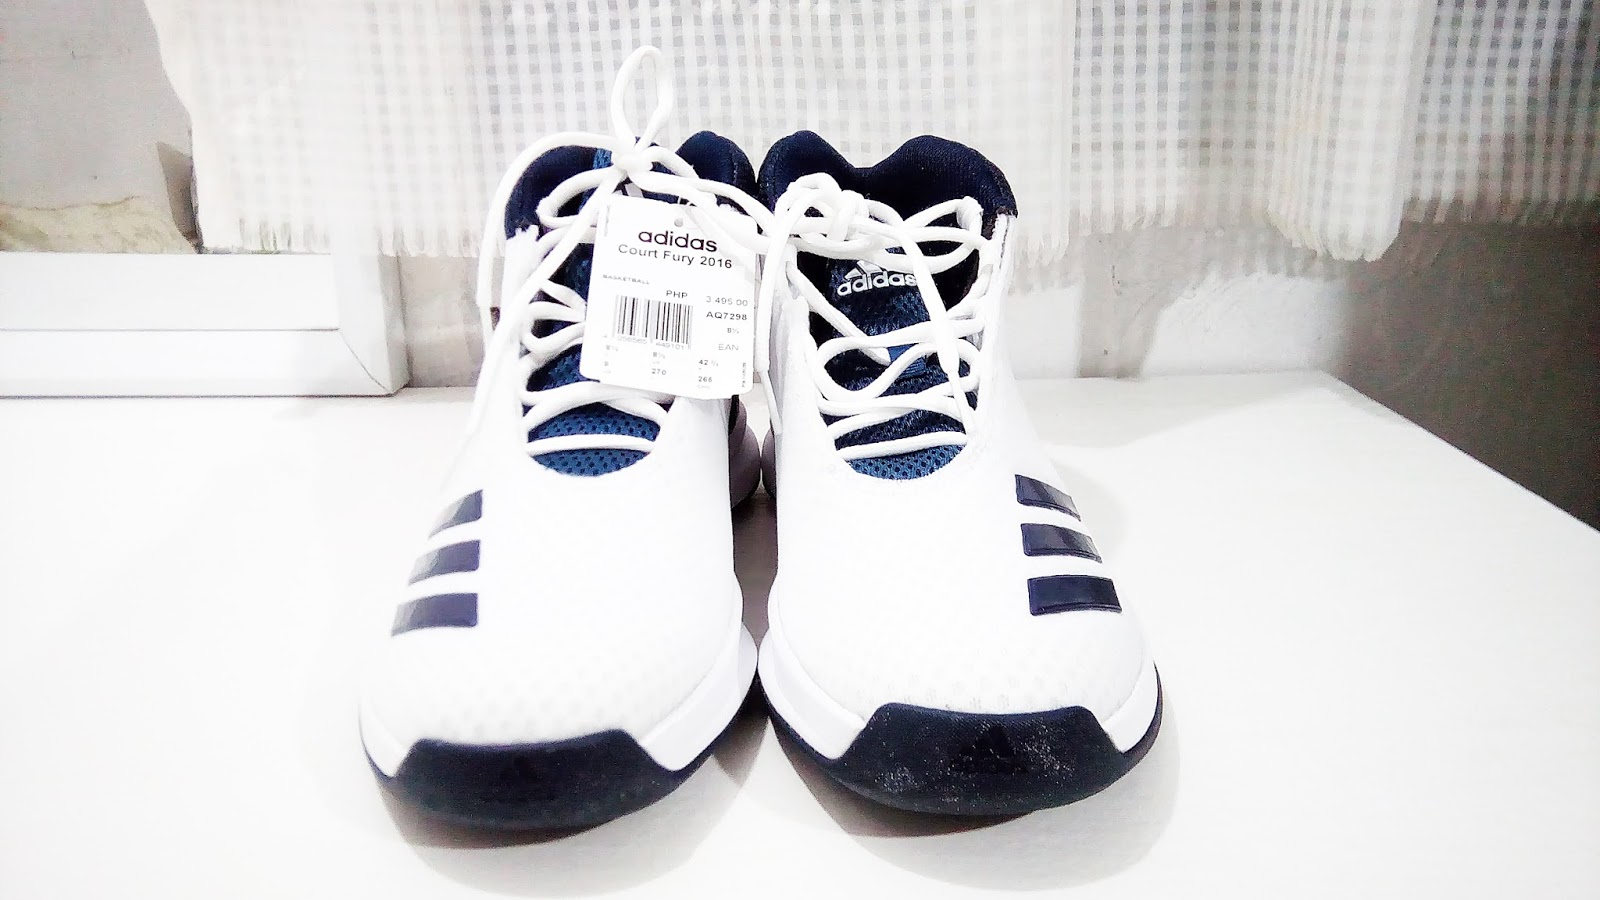 newest aa29a d4f7b Brand Adidas Model Court Fury 2016 Mid Shoes Regular Price Php 3,495.00.  On sale Price Php 2,446.50